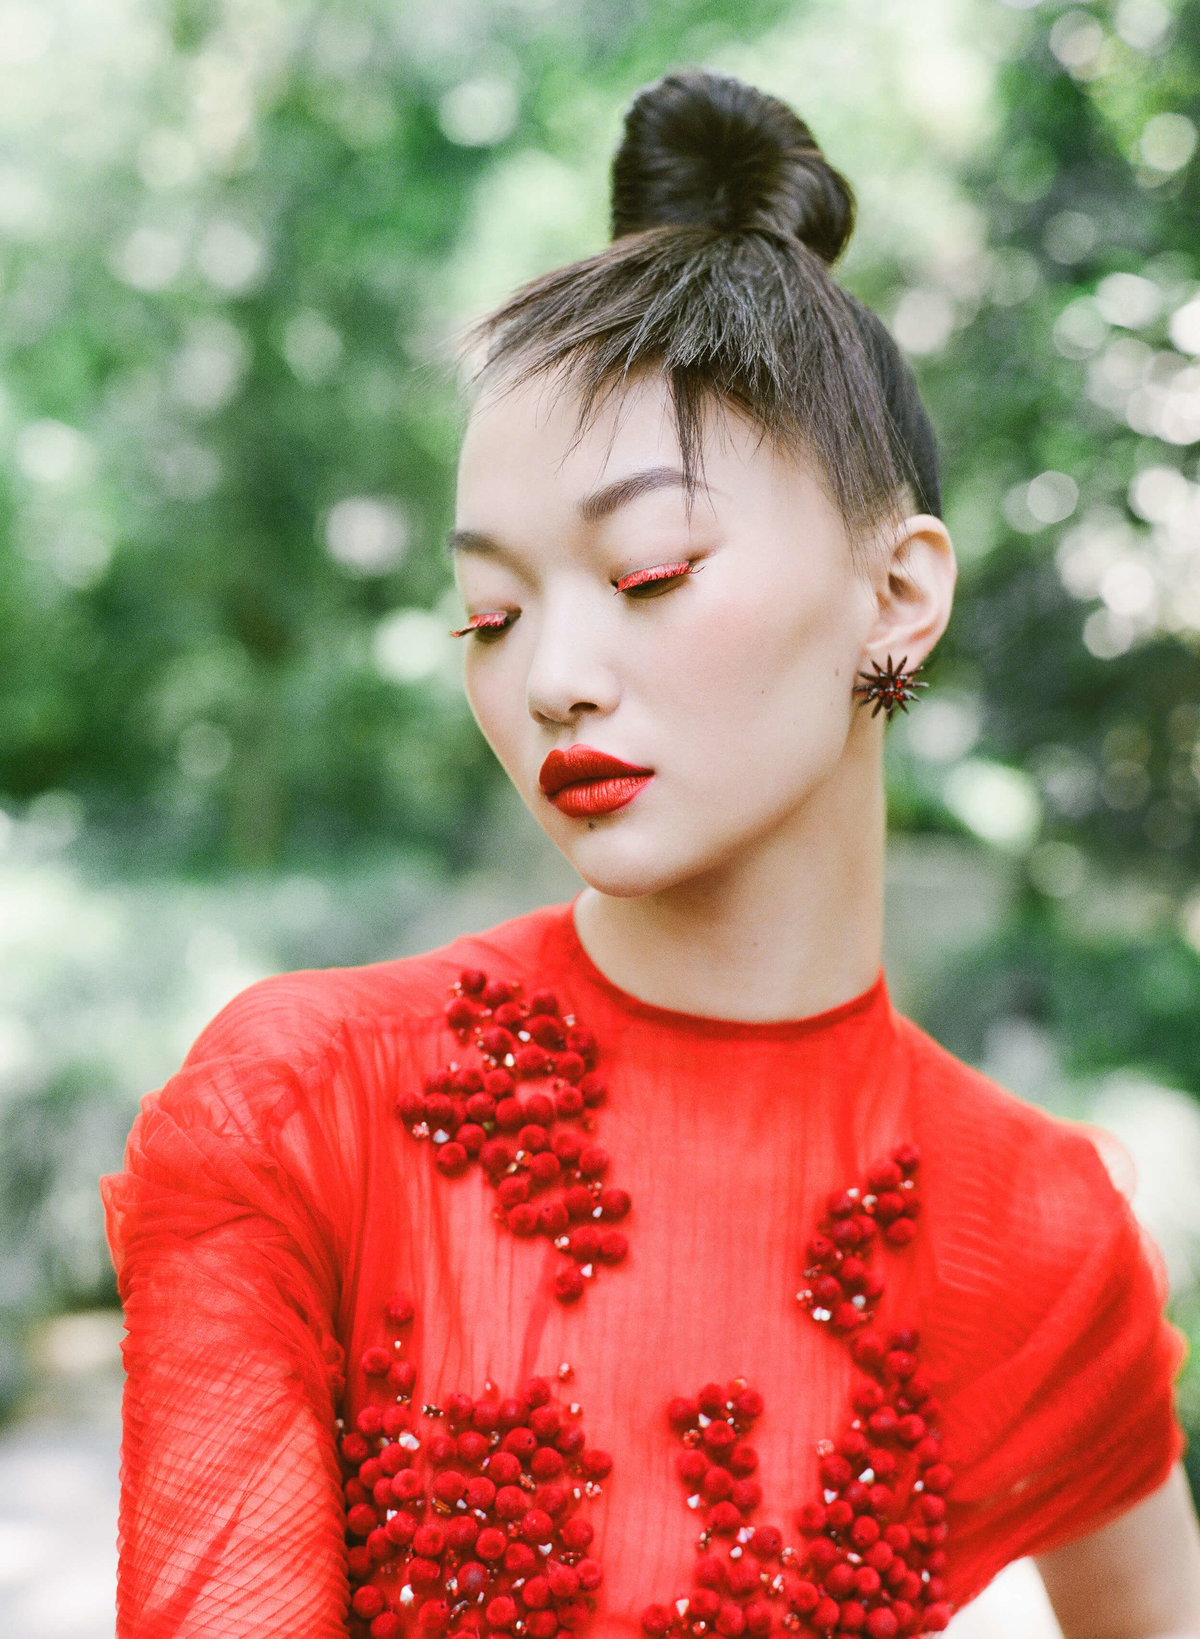 5-KTMerry-Harpers-Bazaar-Phuong-My-haute-couture